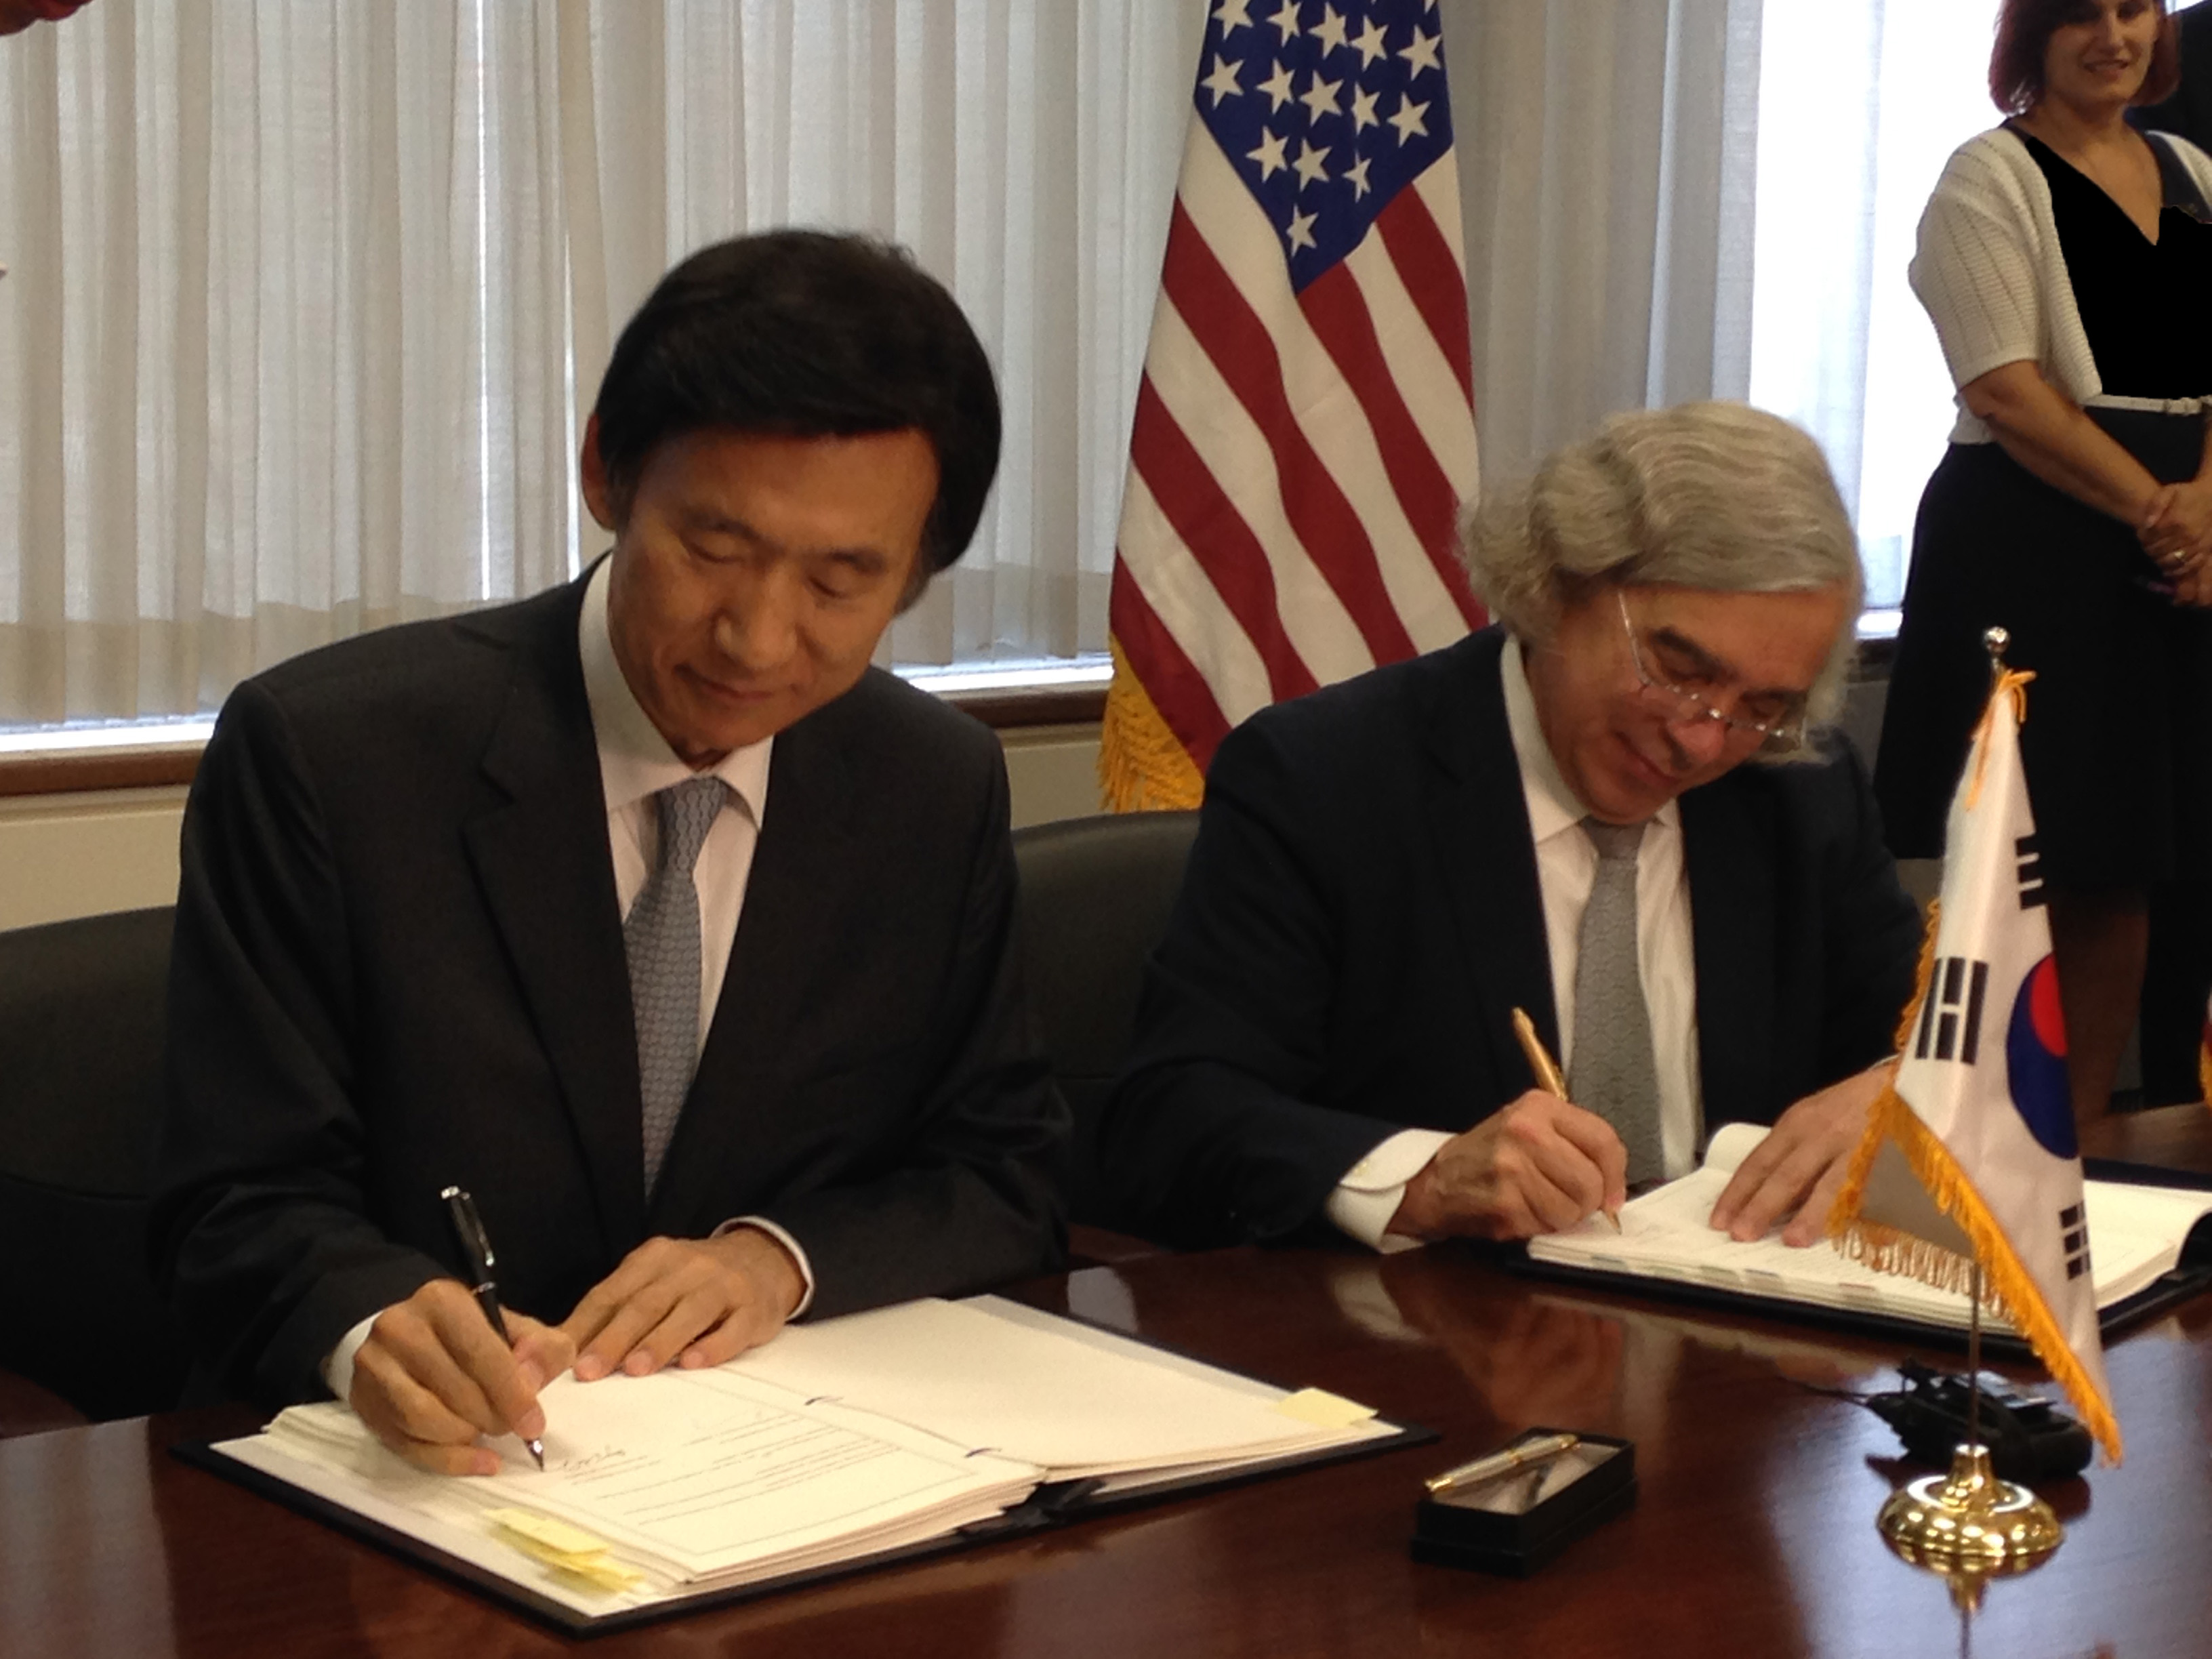 South Korean Foreign Minister Yun Byung-se (left) and U.S. Energy Secretary Ernest Moniz sign an agreement for peaceful nuclear cooperation in Washington on June 15.(U.S. Department of Energy)